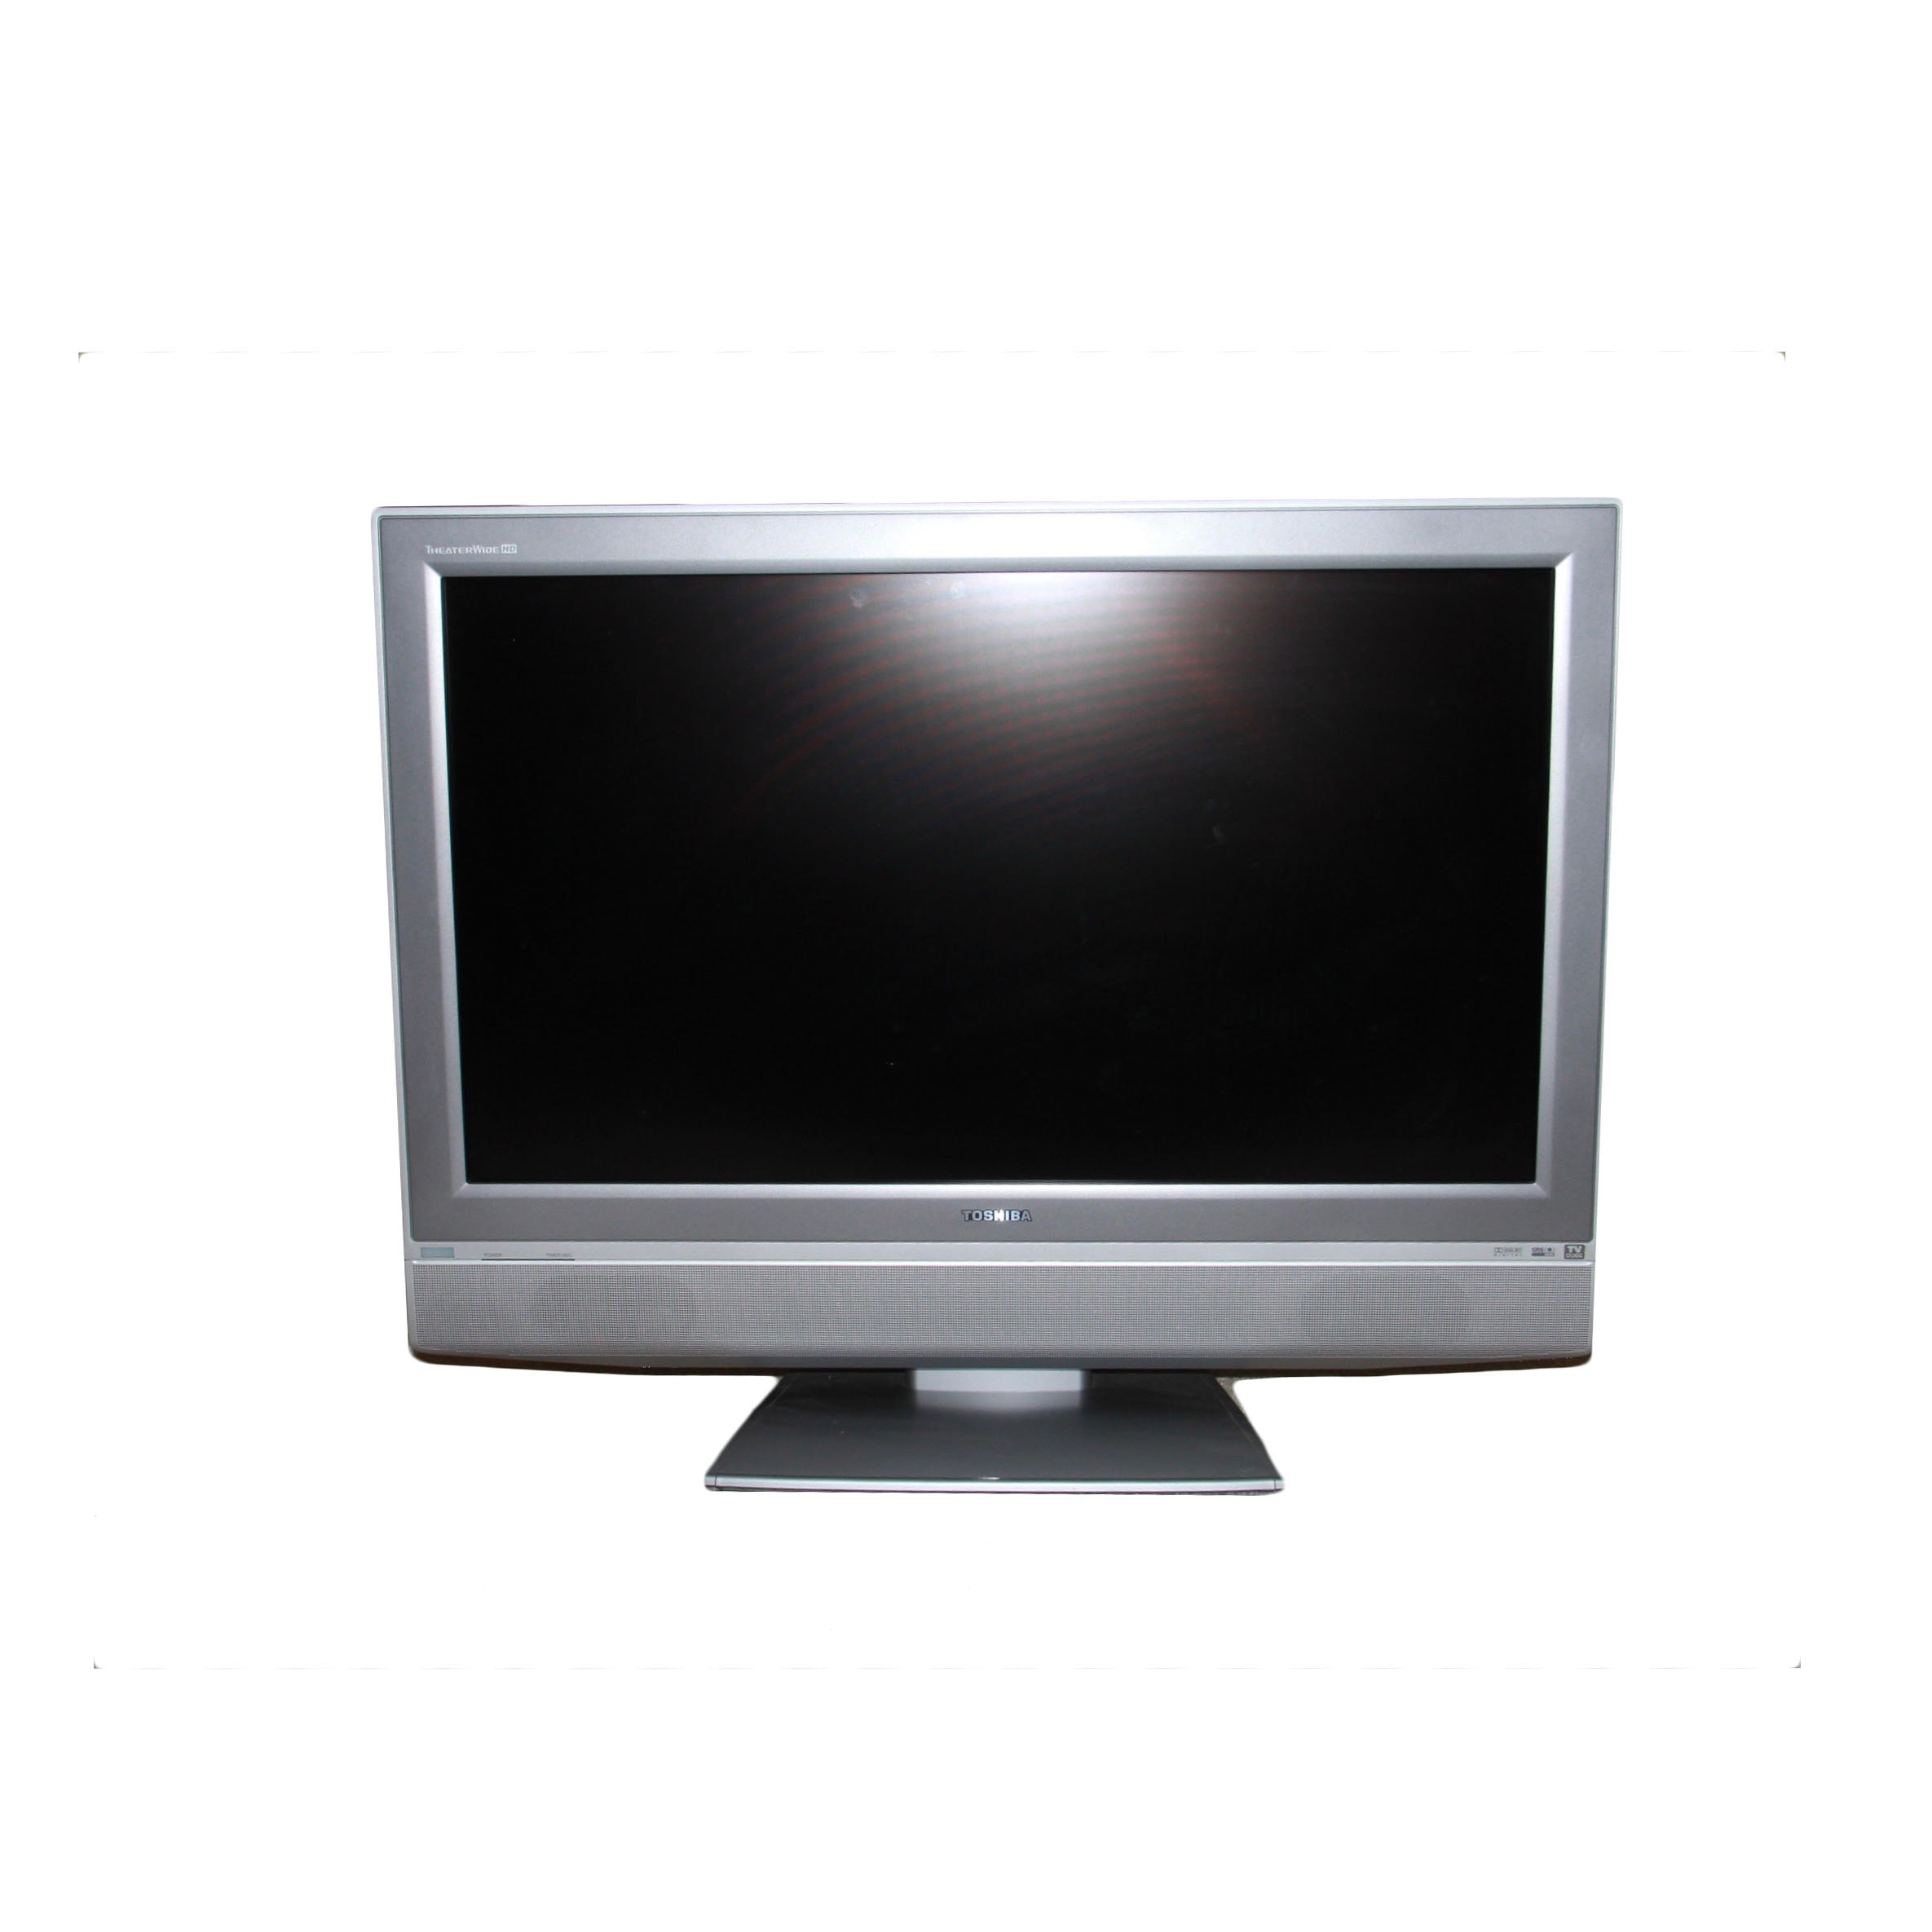 Toshiba High Definition LCD Television